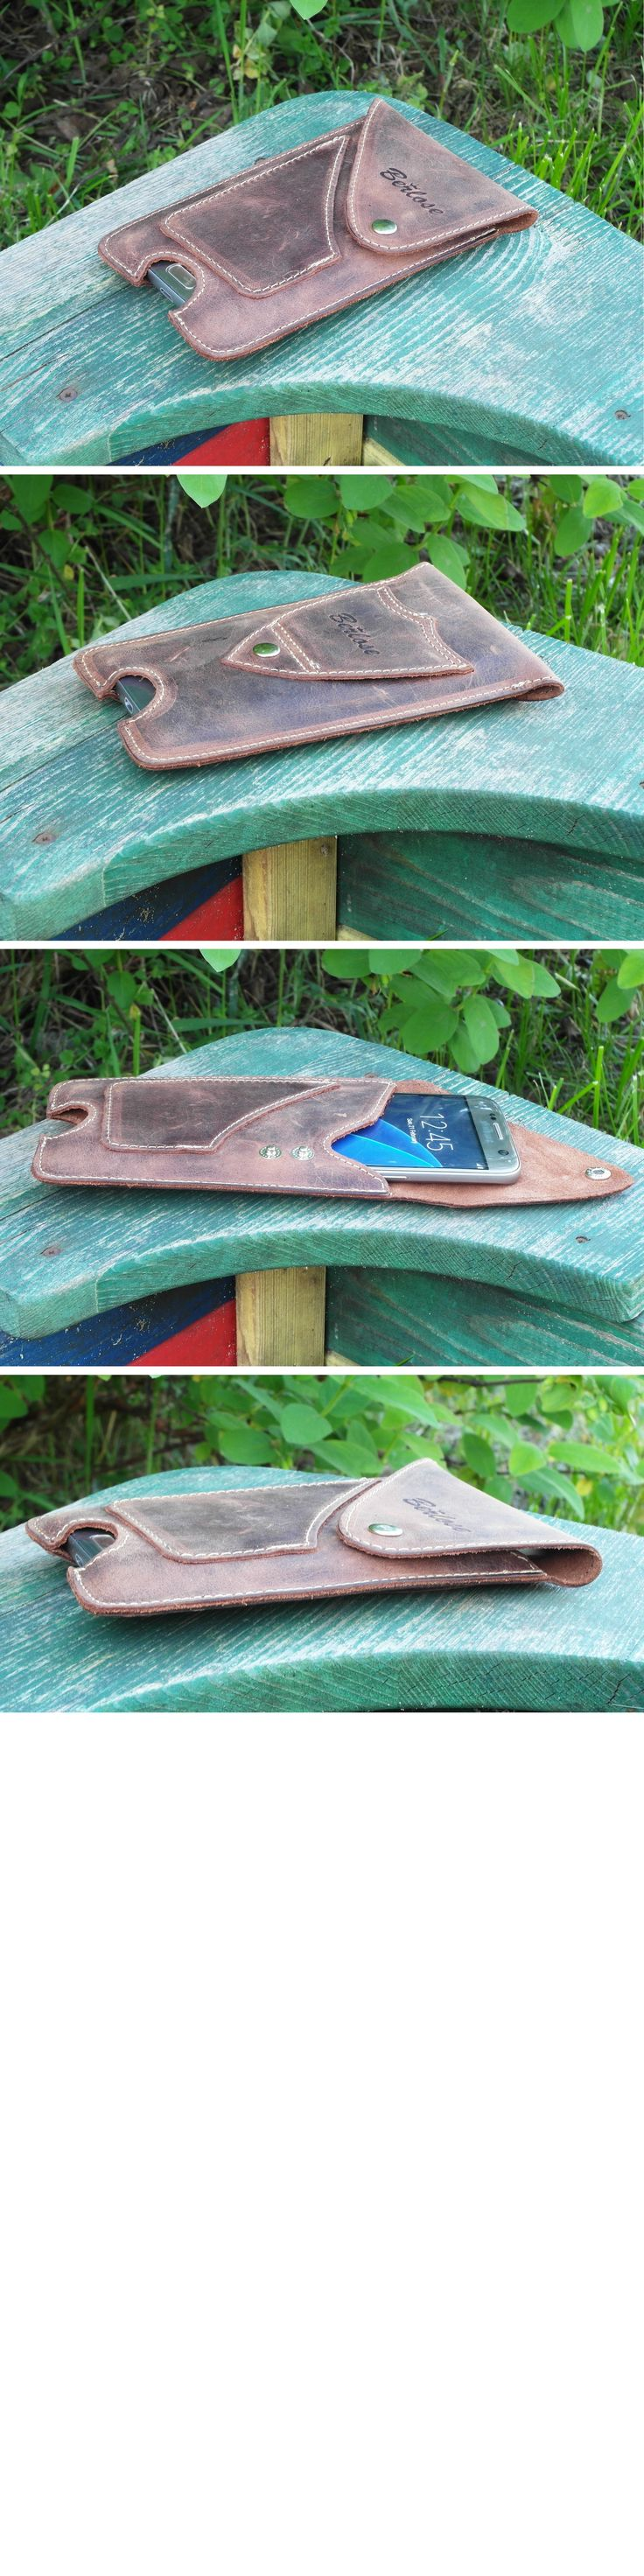 Handmade of genuine leather Texas style belt pouch for mobile phones with card pocket and permanently sewn belt loop.